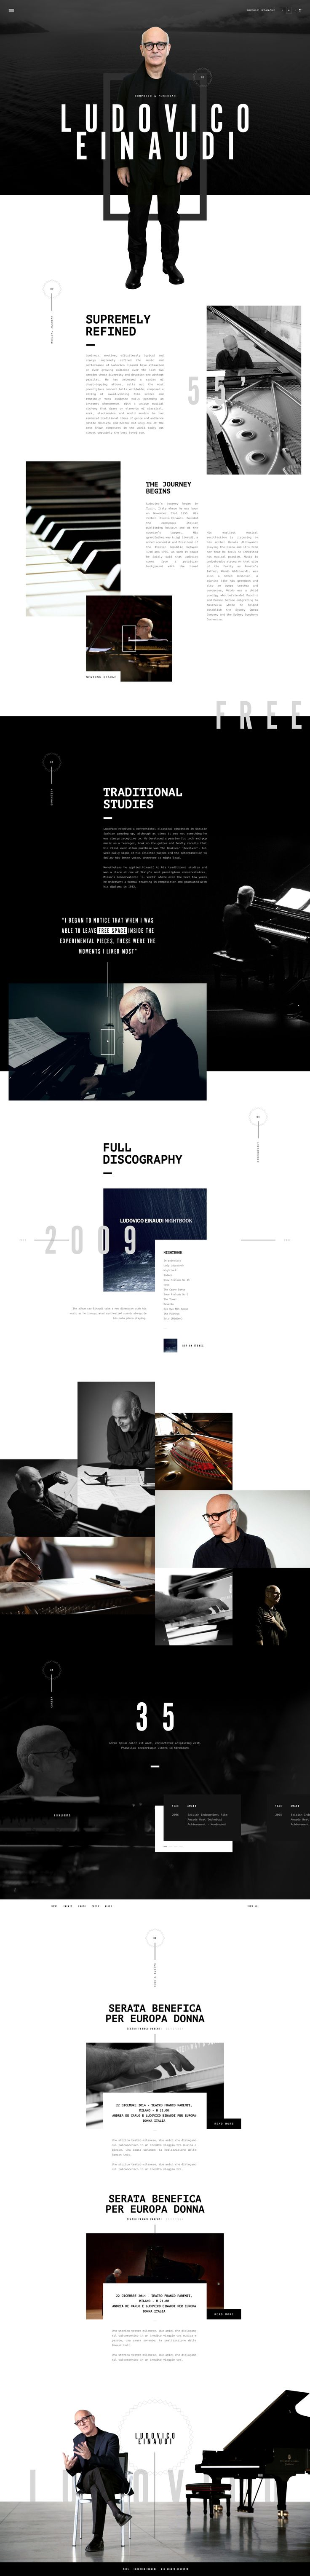 Ludovico Einaudi web presence conceptual design. Ui work by Gene Ross on…